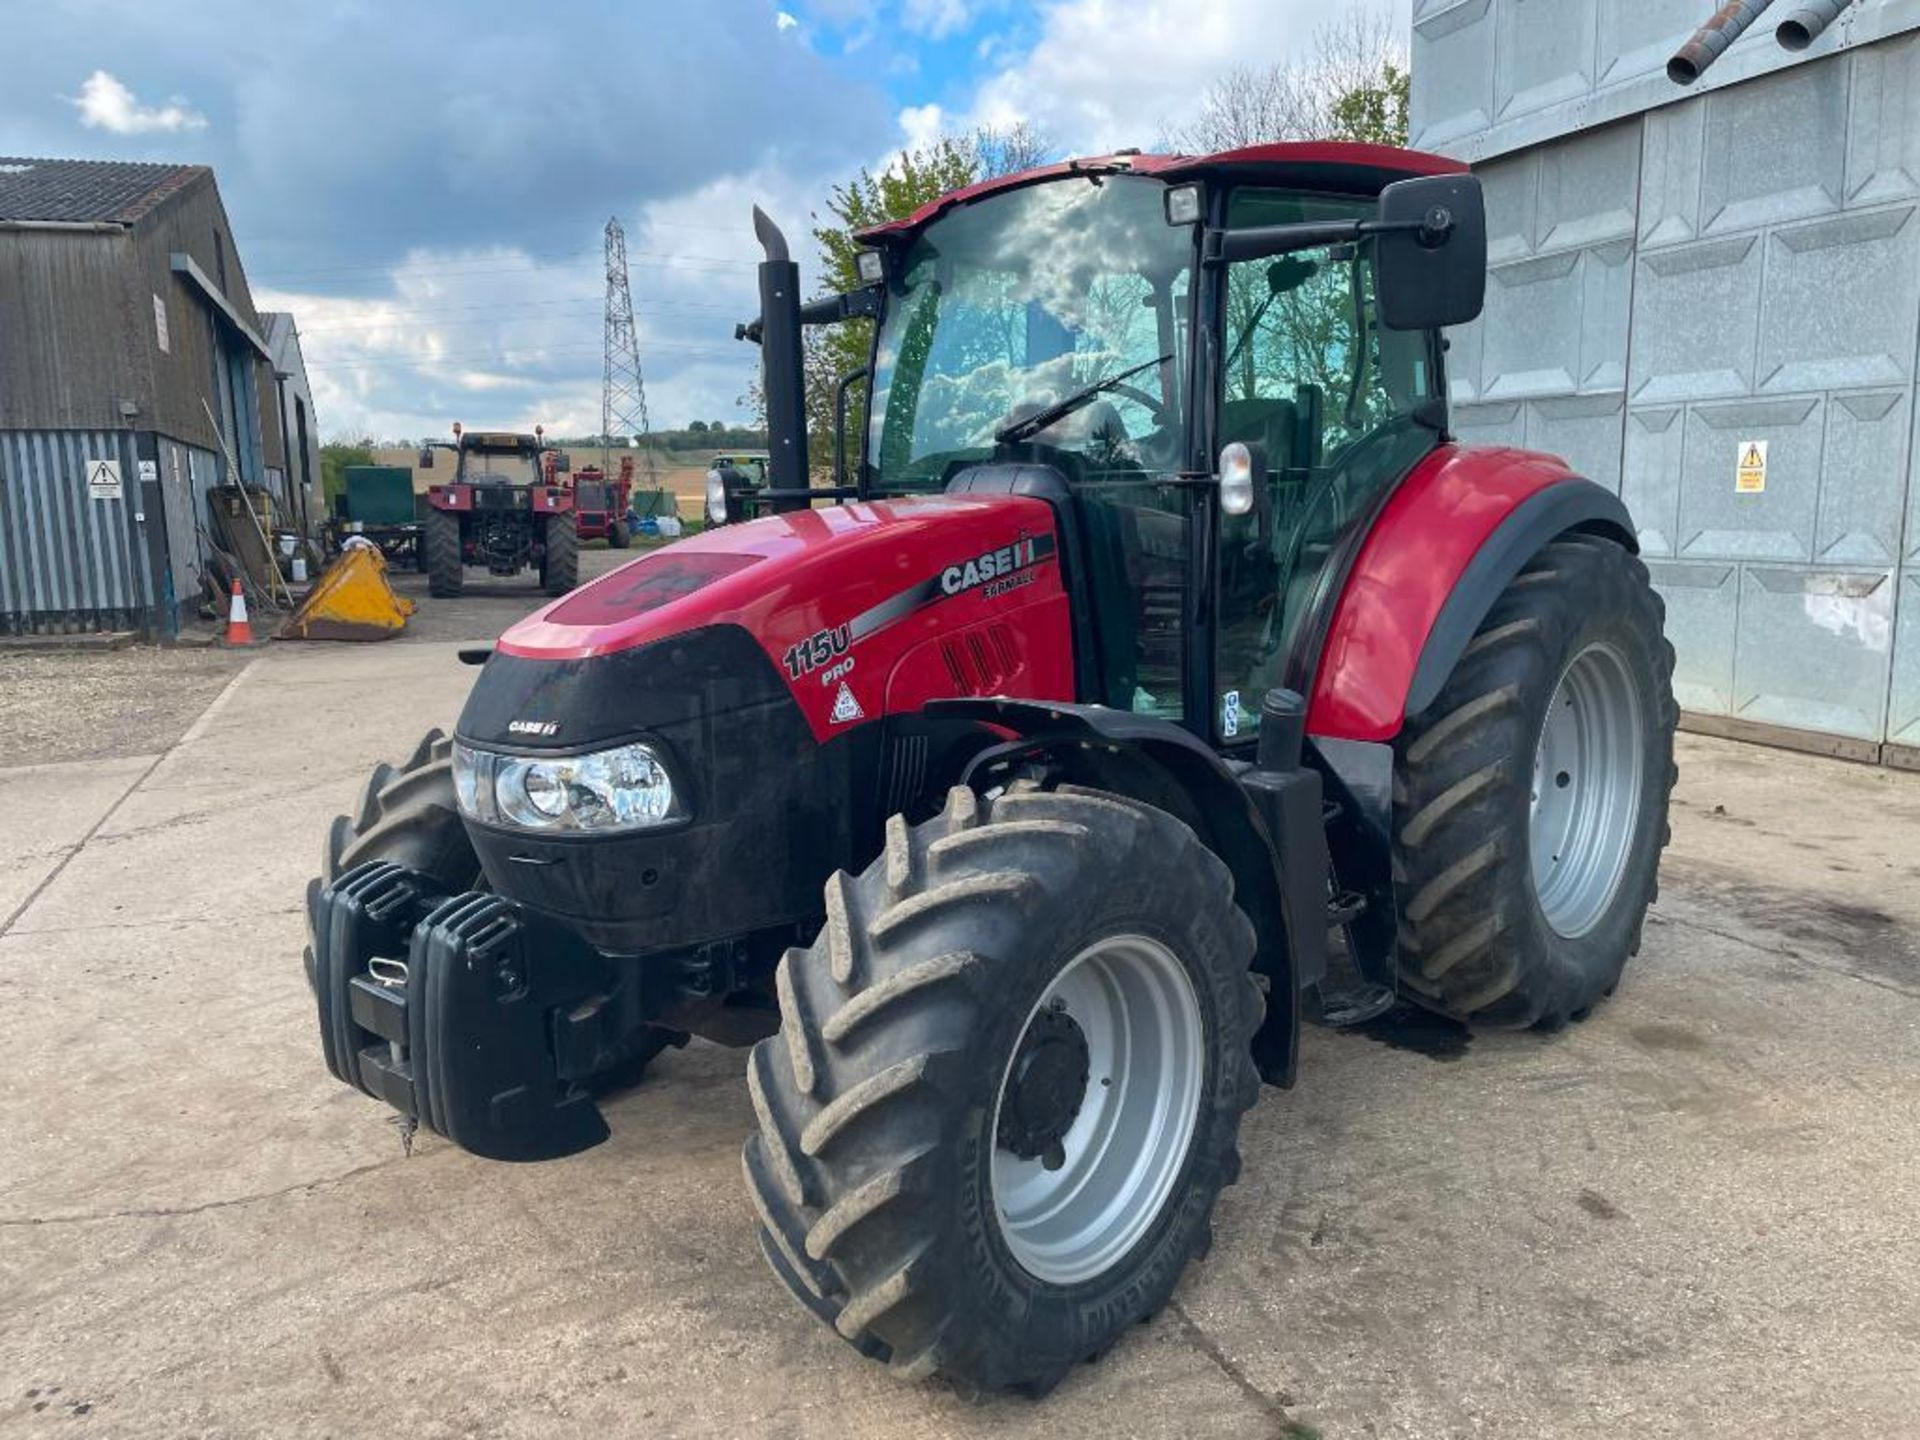 2014 Case IH Farmall 115U PRO 40Kph 4wd tractor with 2 spools, PUH on 440/65R24 front and 540/65R34 - Image 10 of 10